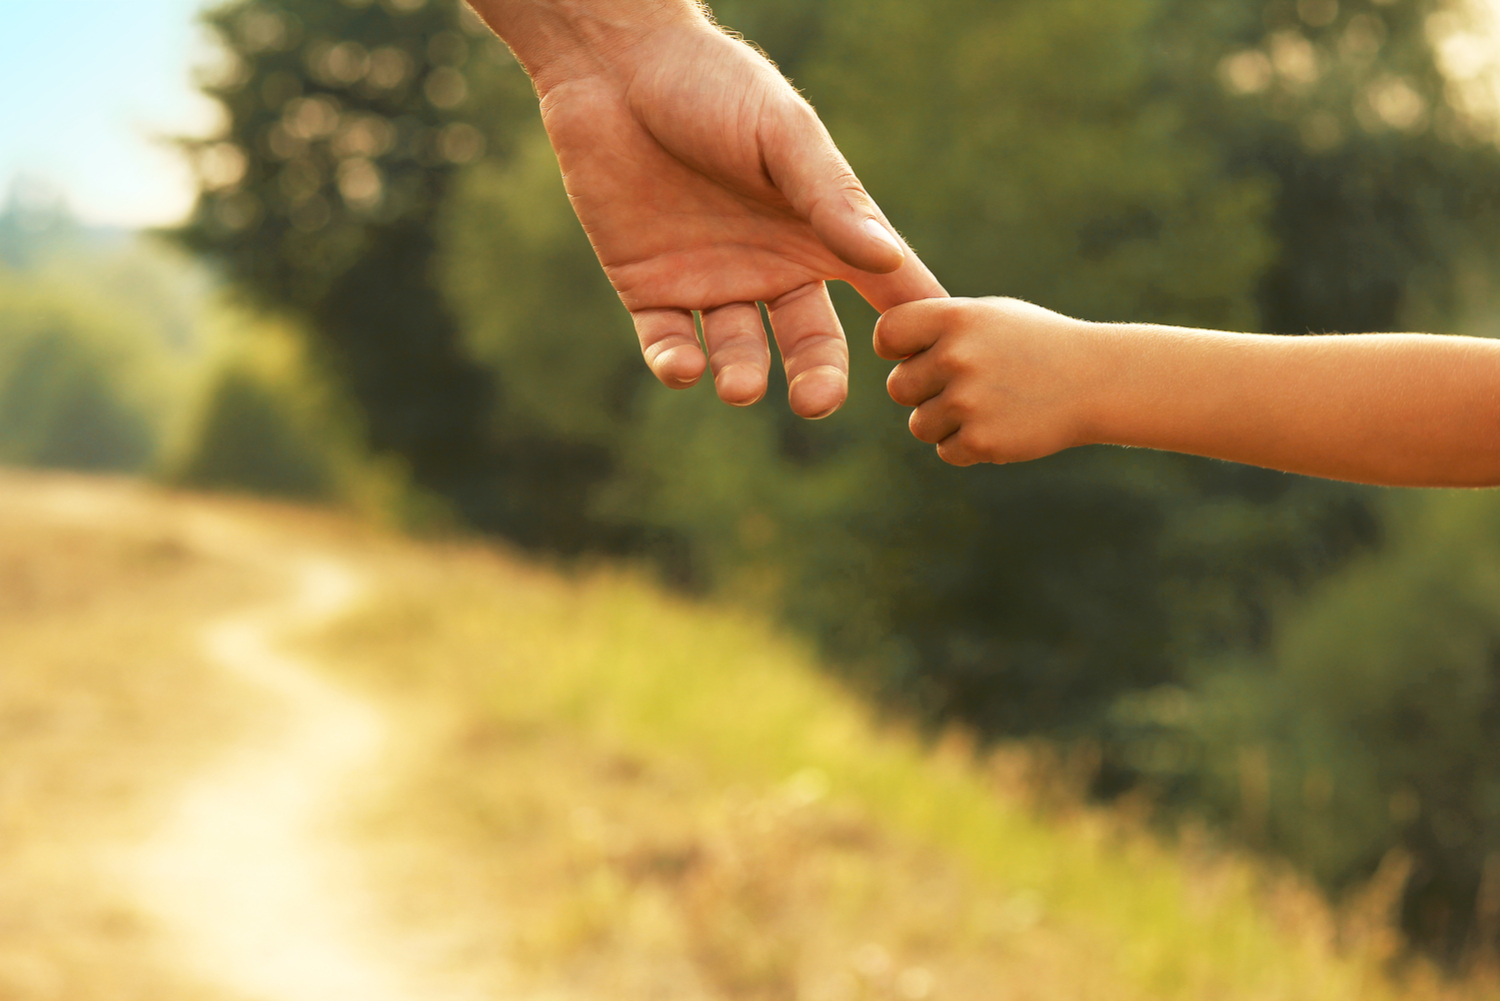 Small child holds parent's hand.